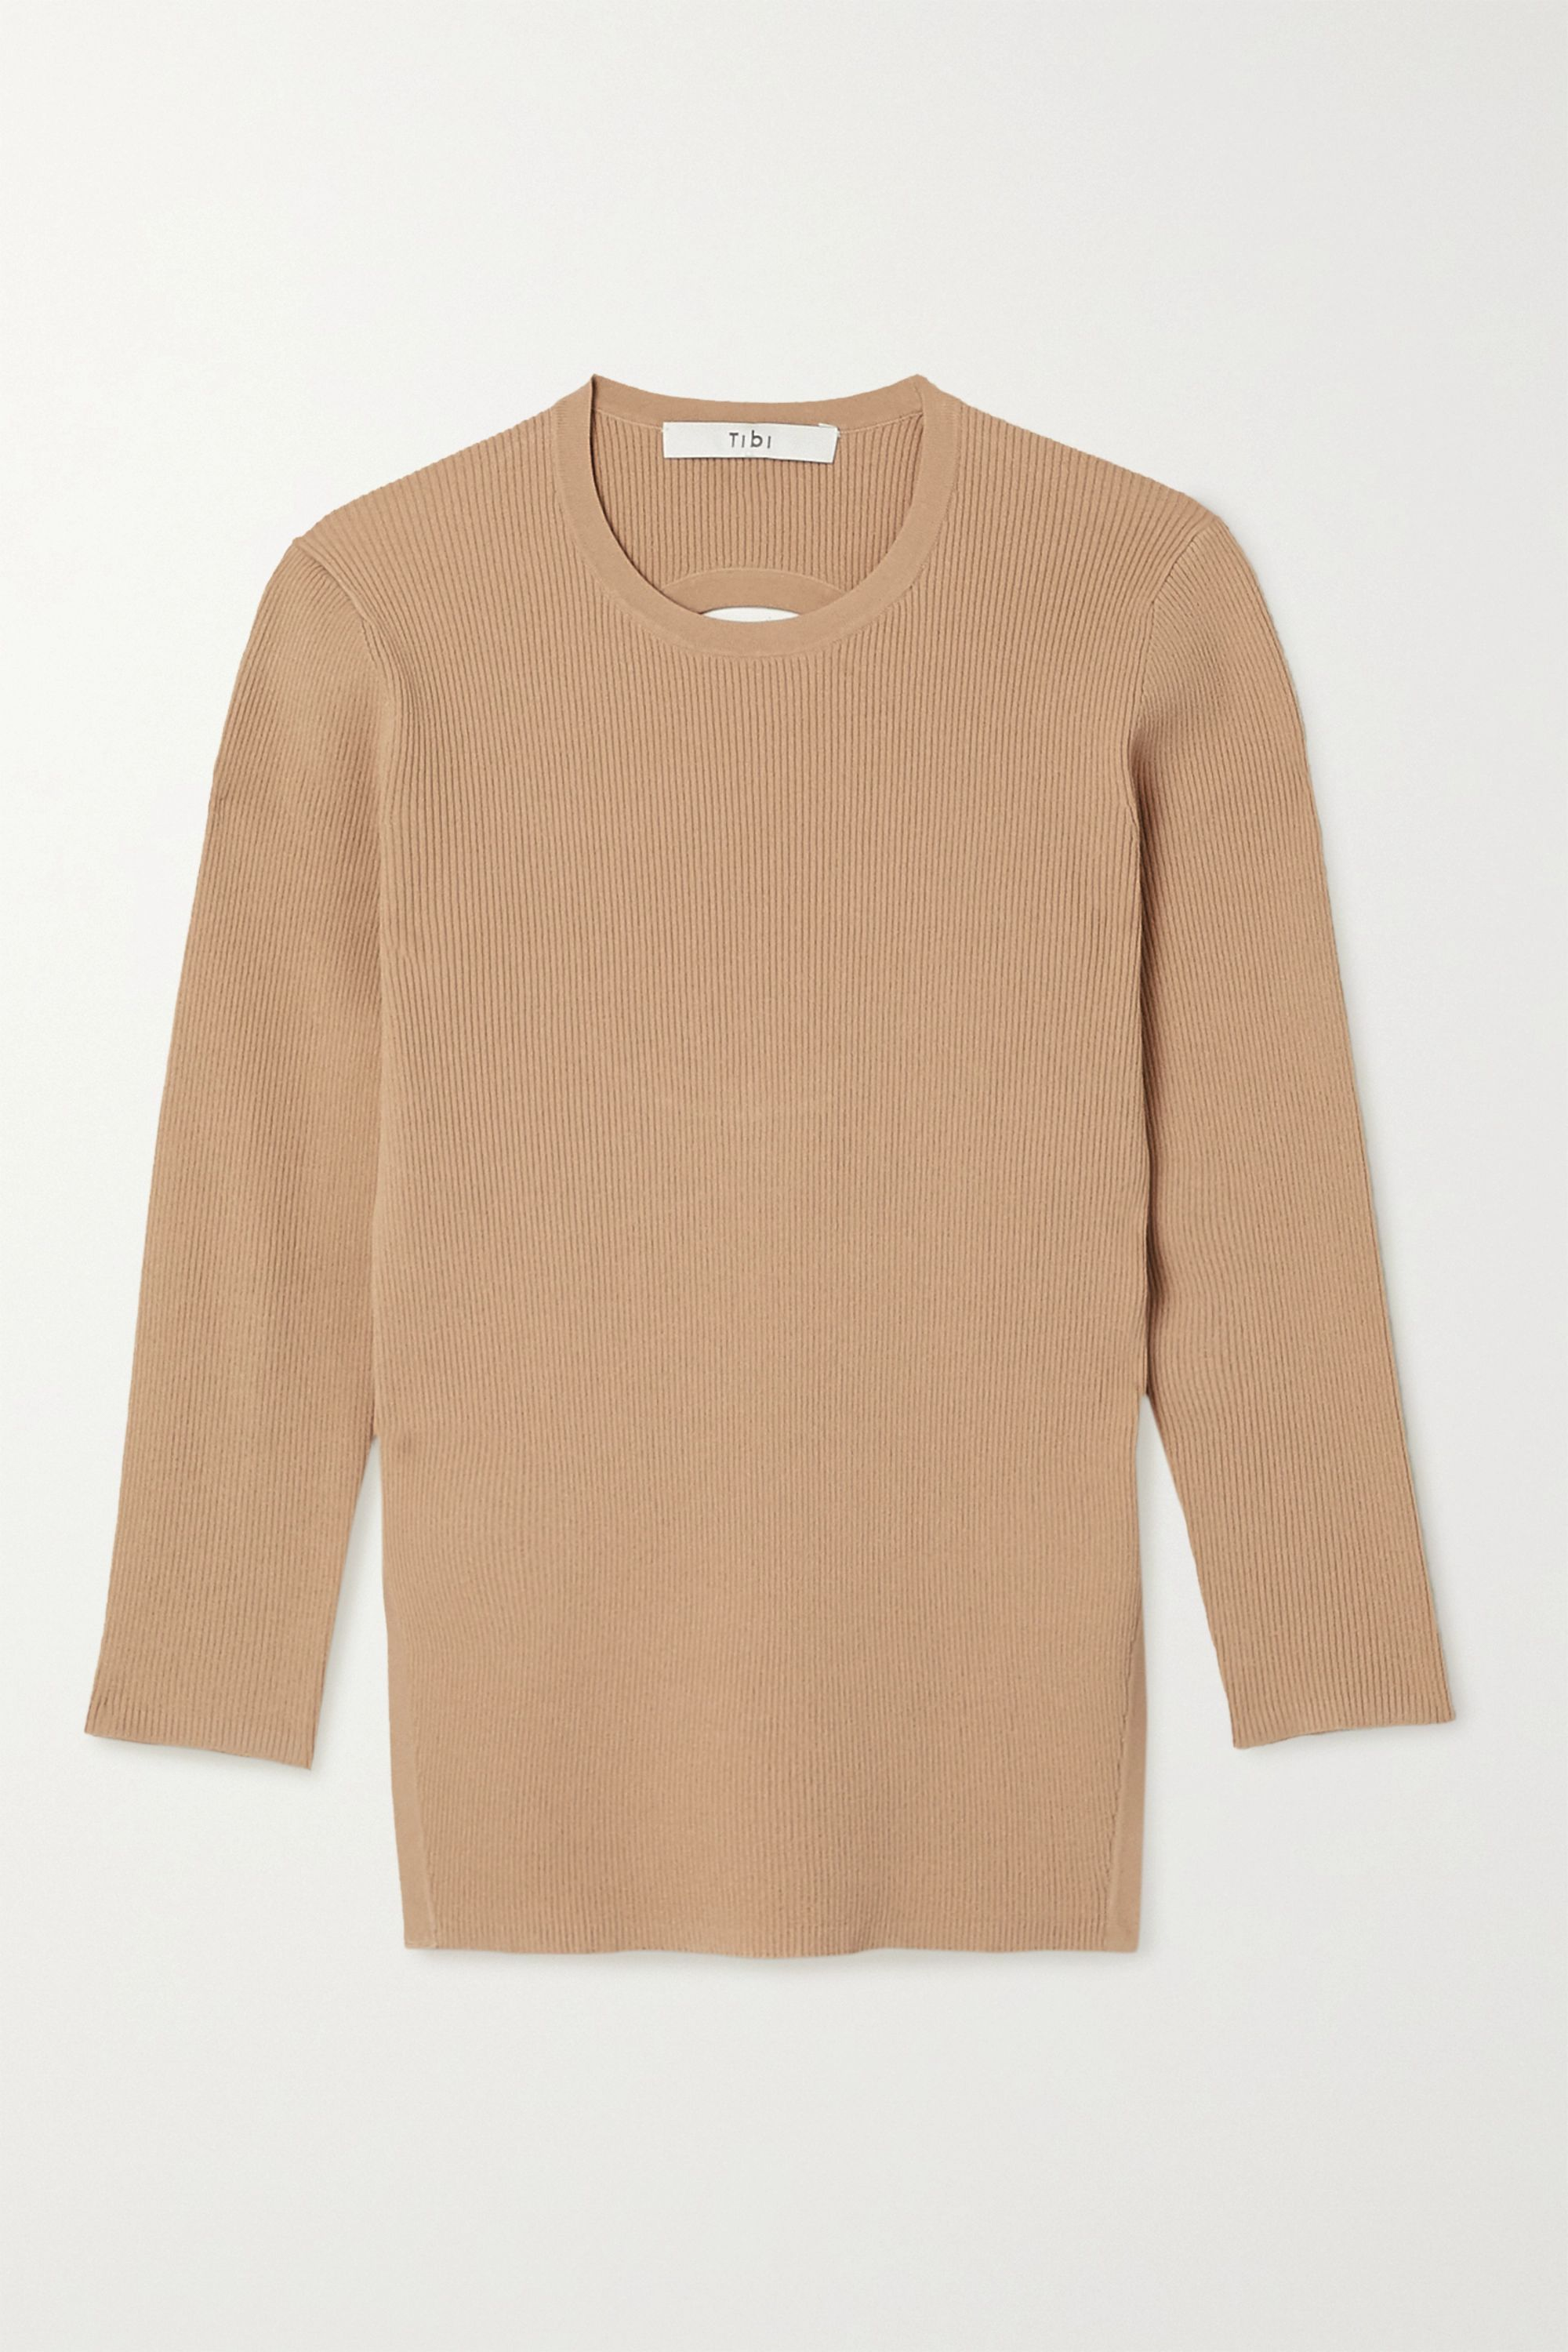 Giselle cutout ribbed-knit sweater